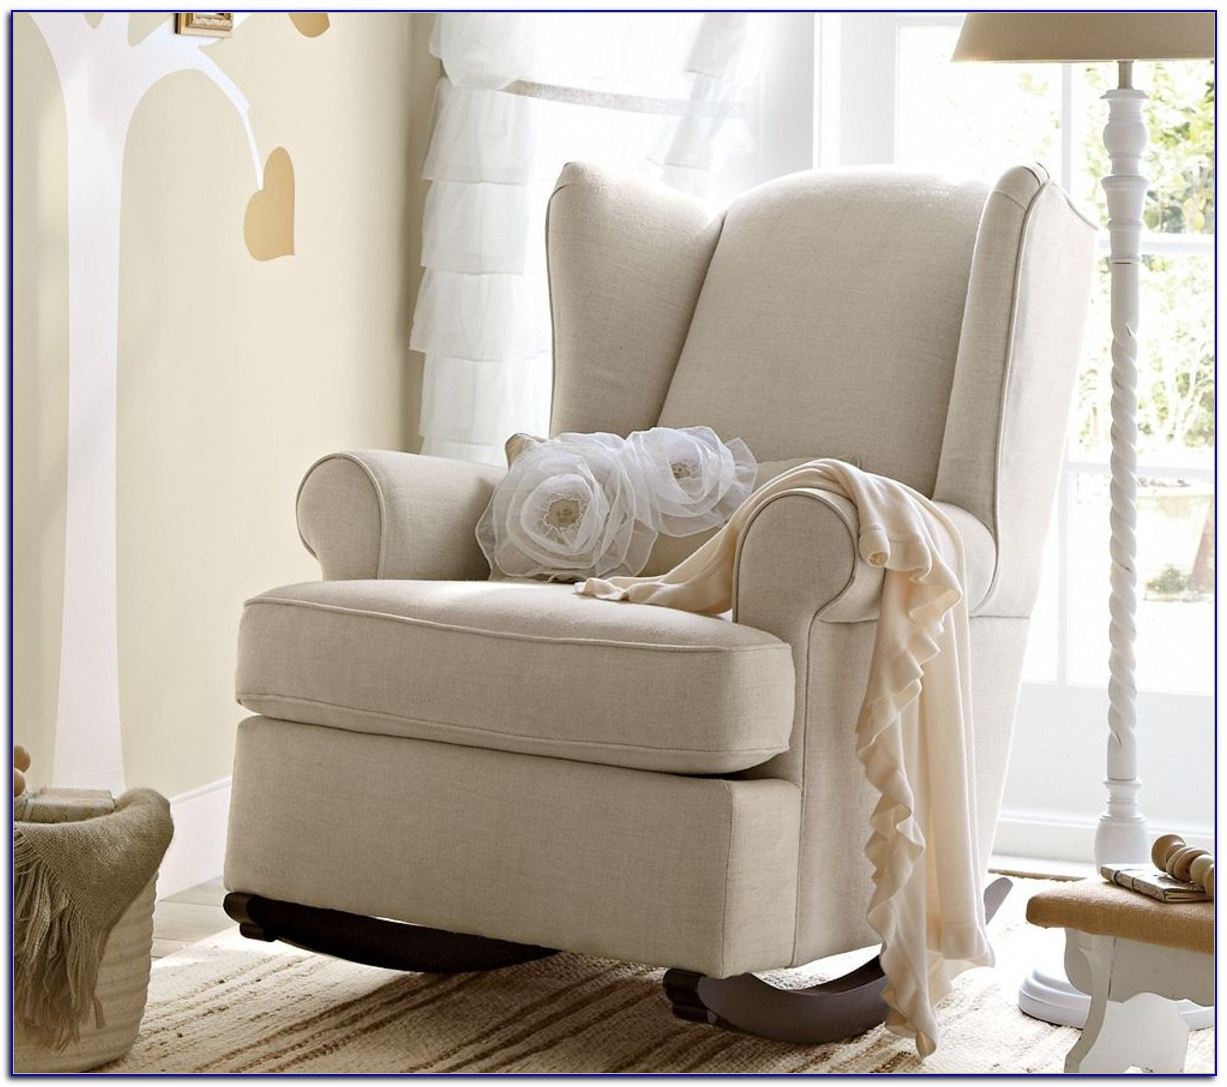 Rocking Chairs At Target Pertaining To Widely Used Rocking Chairs For Nursery At Target F99X On Perfect Home Designing (View 3 of 15)